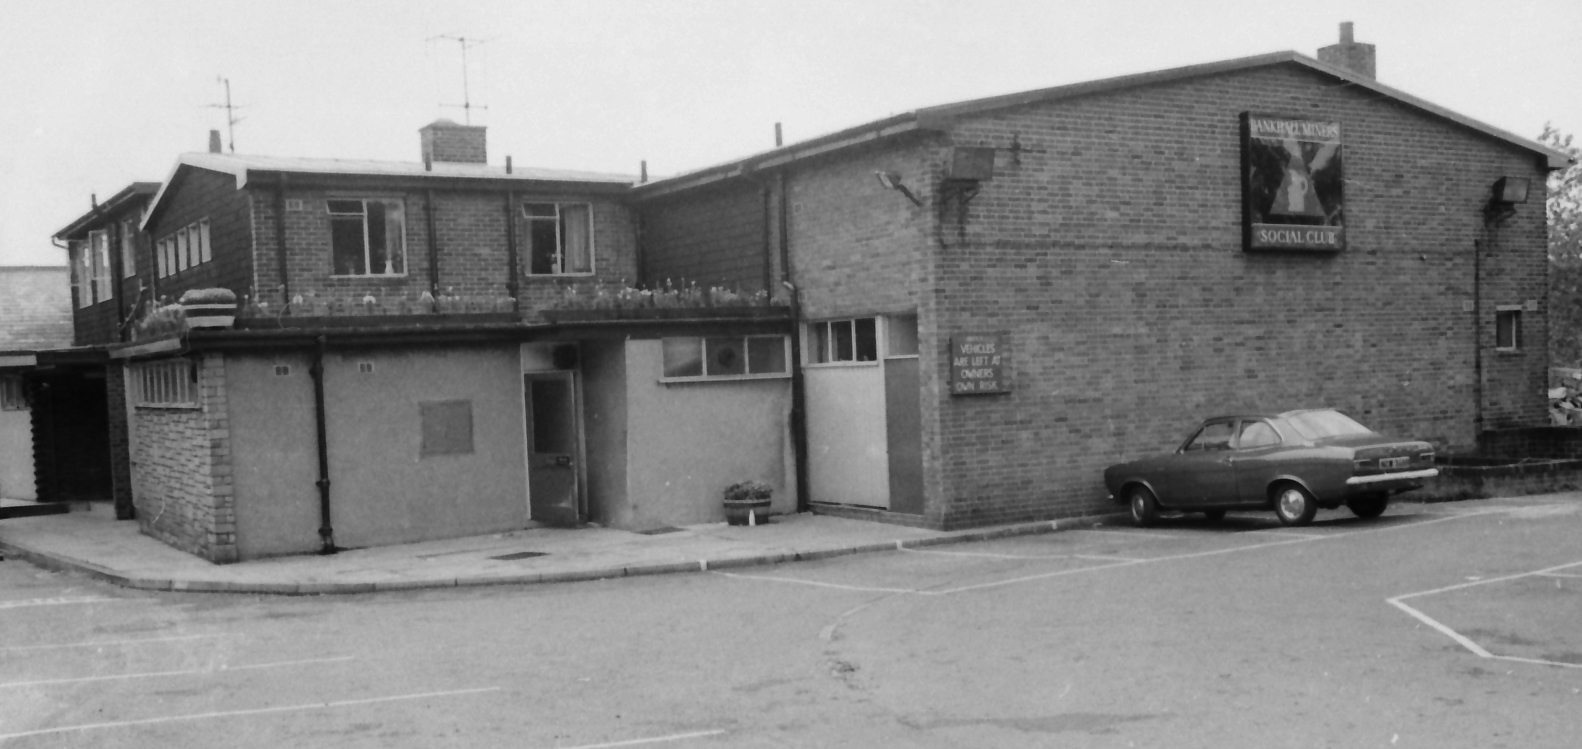 Bank Hall Miner's Club House c1973